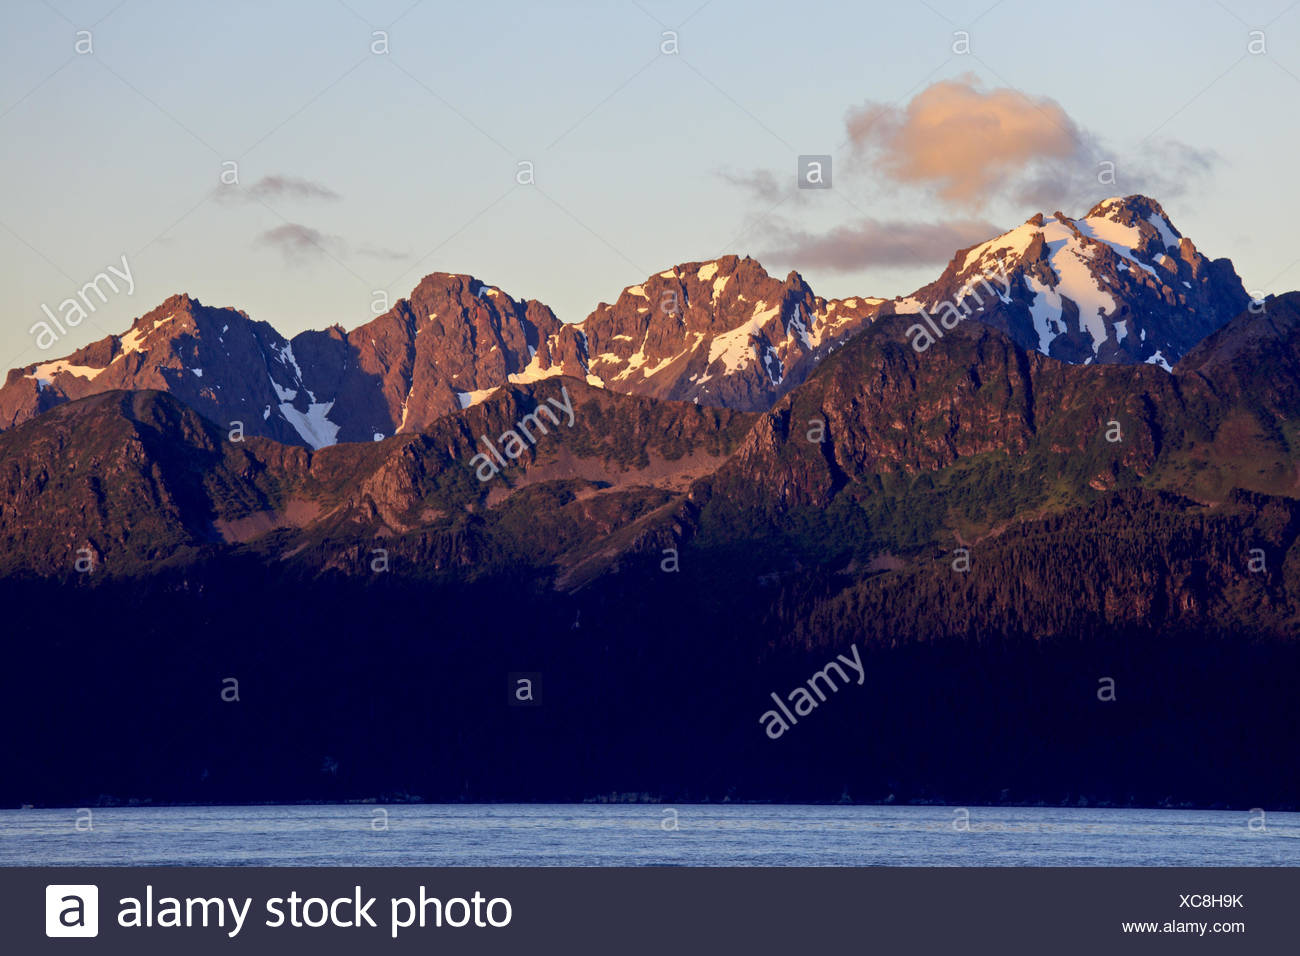 North America, the USA, Alaska, the central south, Kenai Peninsula, Resurrection Bay, Chugach Mountains, - Stock Image